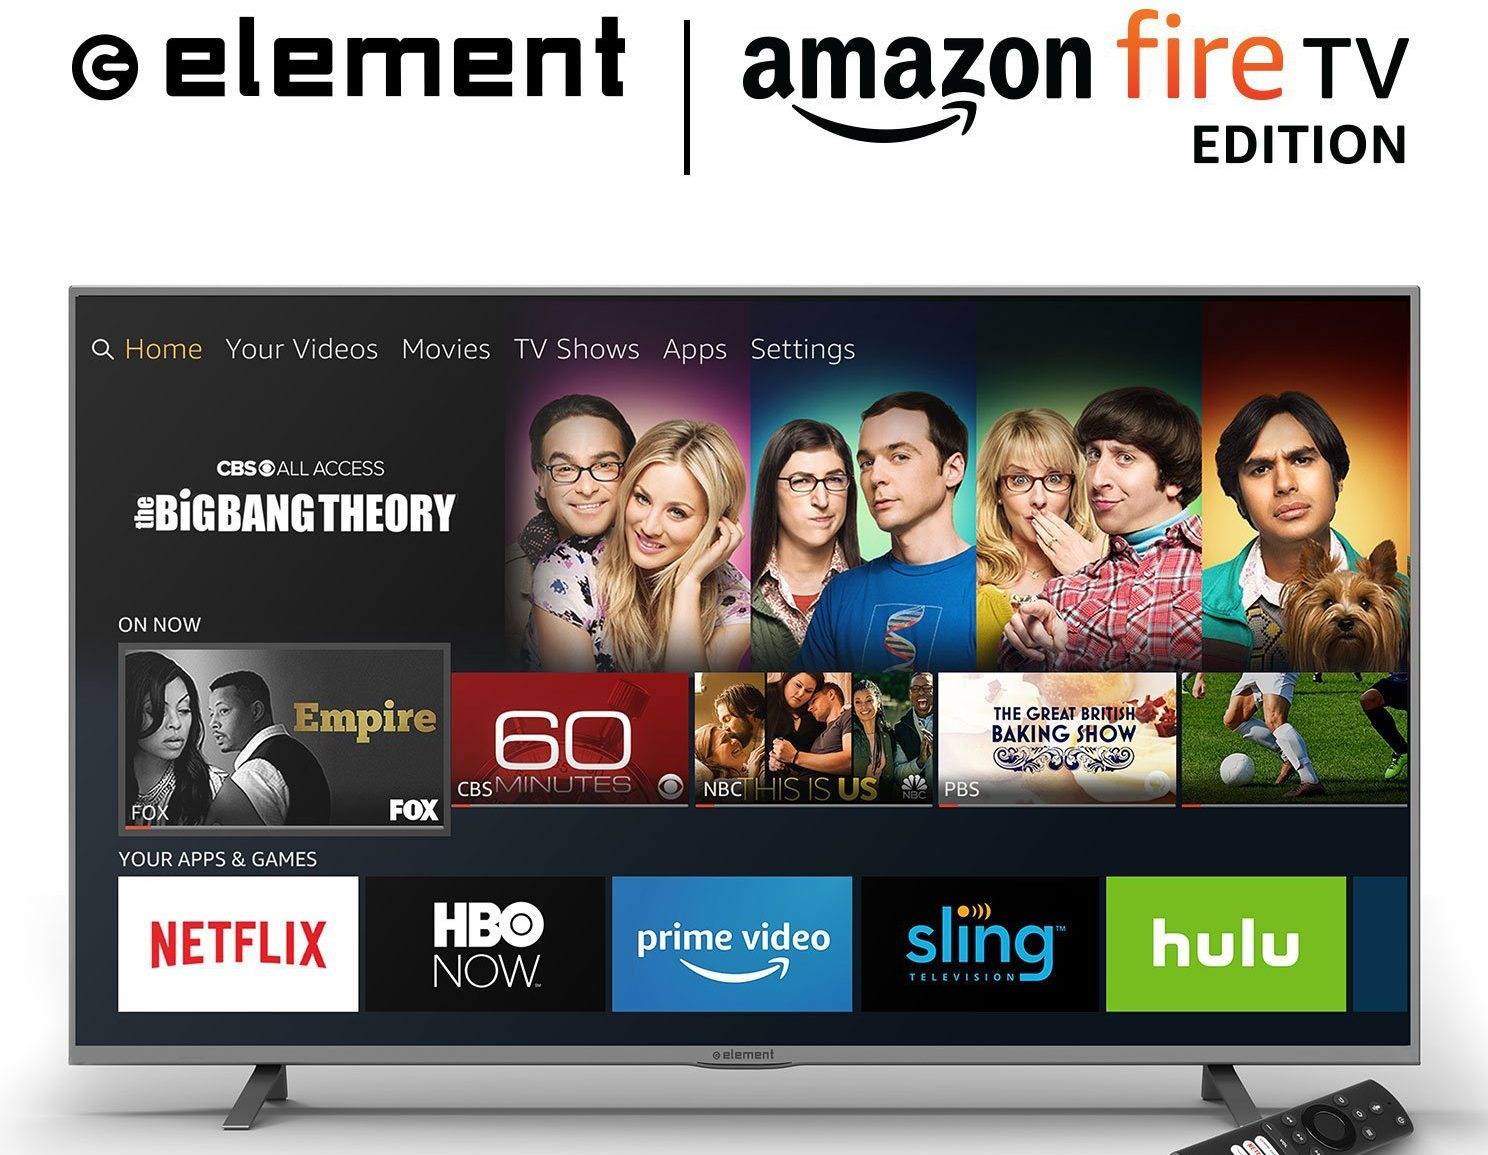 Reduce your Cable bill Amazon Fire TV